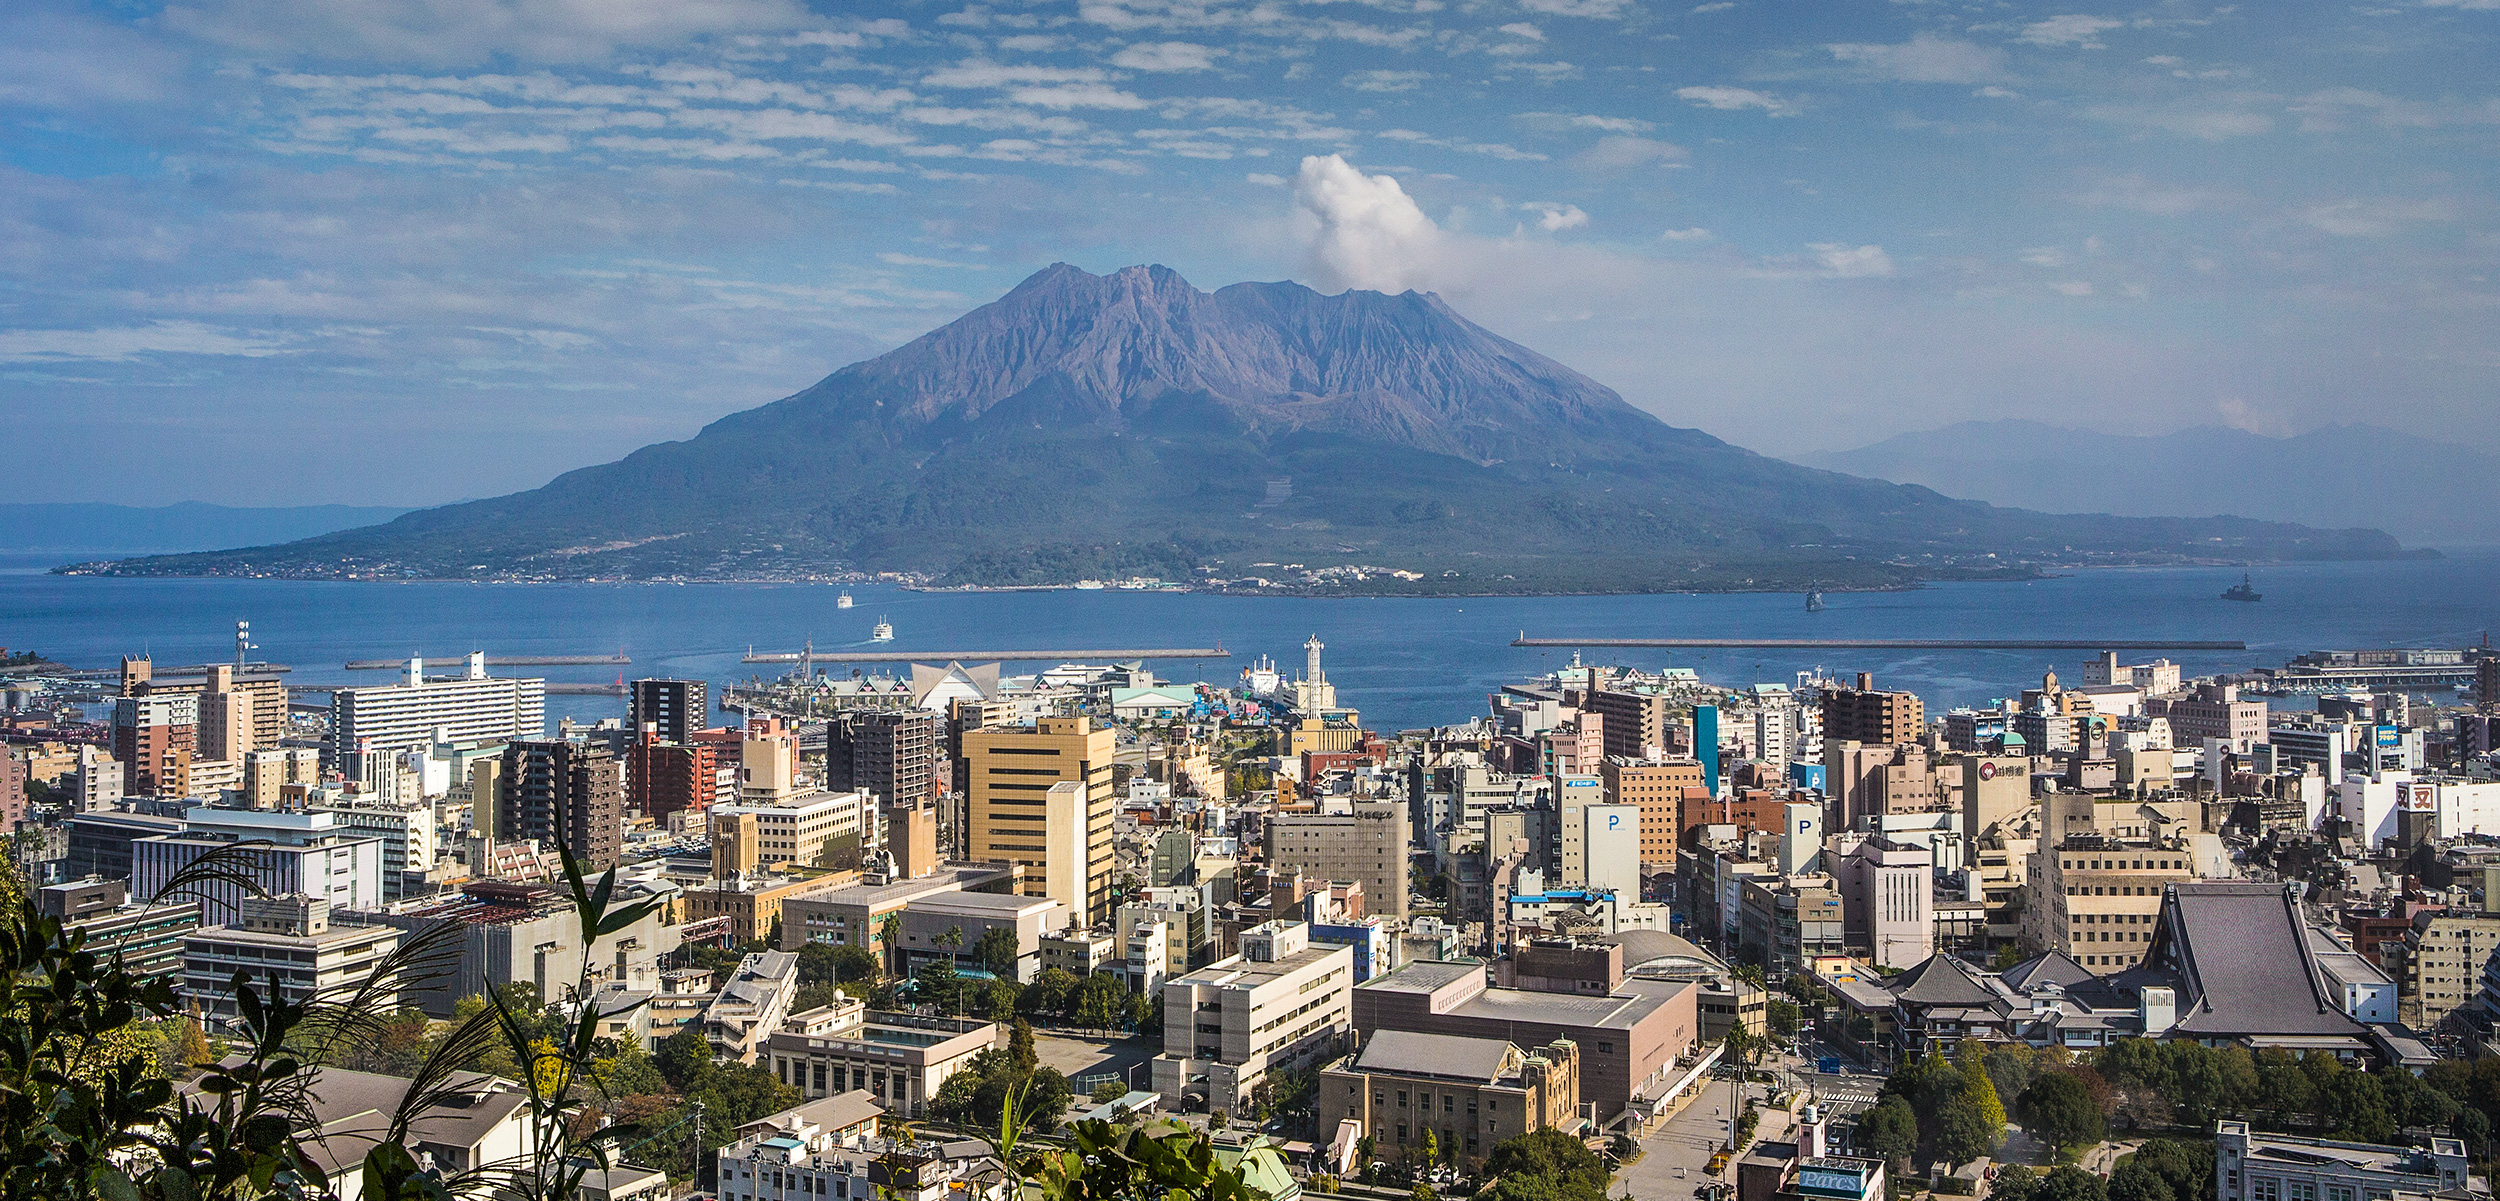 Sakurajima, in southern Japan, is the country's most active volcano, yet it has a surprising number of people living right next to it. Photo by Jose Fuste Raga/Corbis